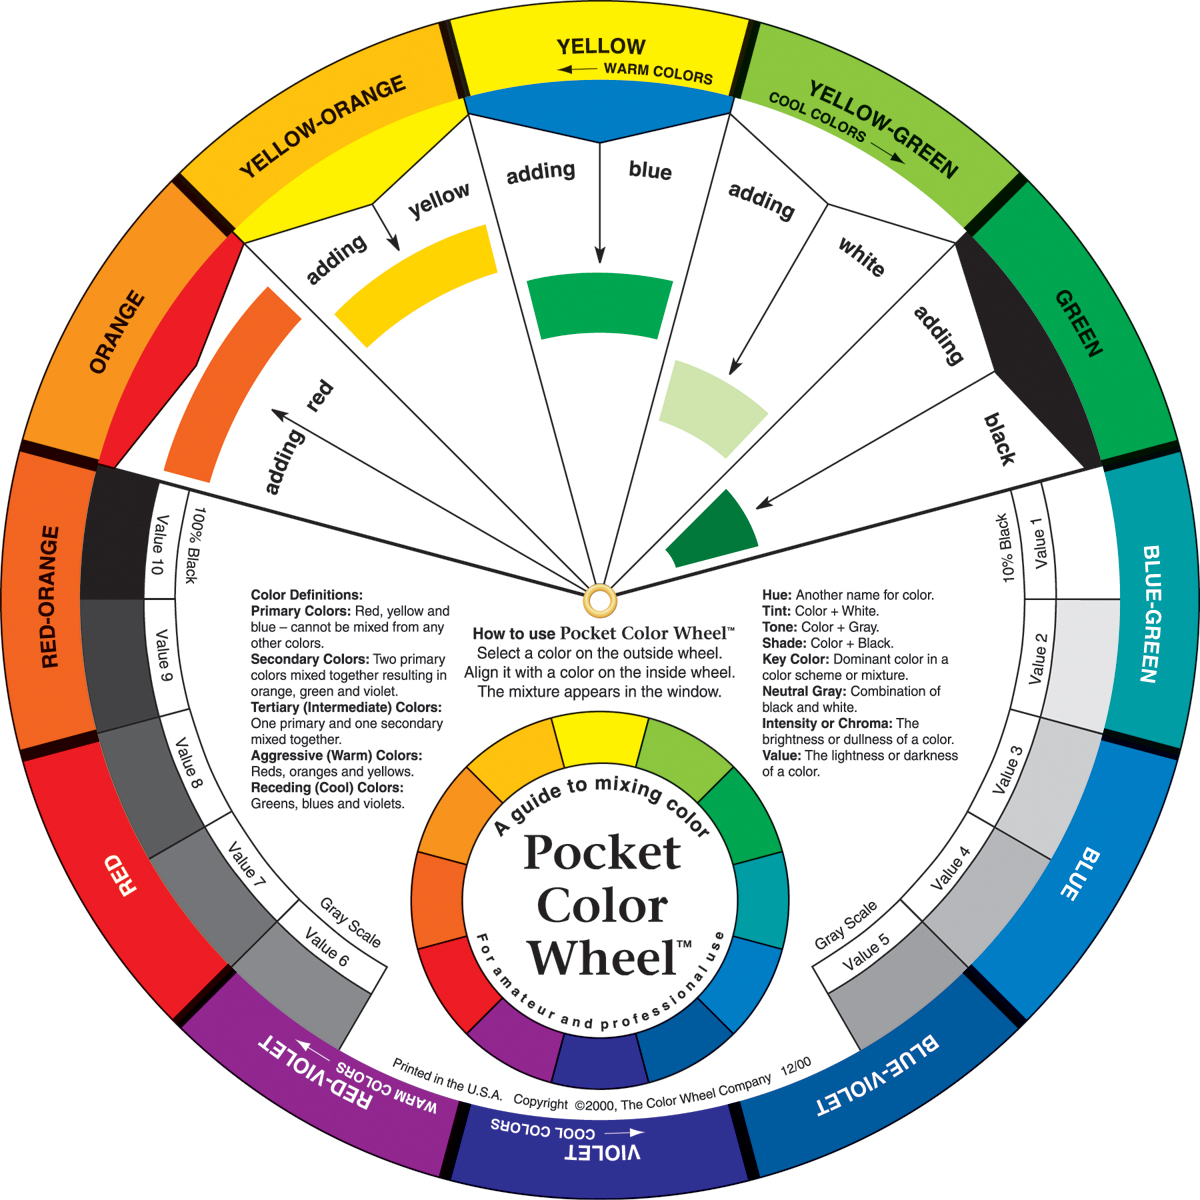 Color Wheel used in matching color schemes.